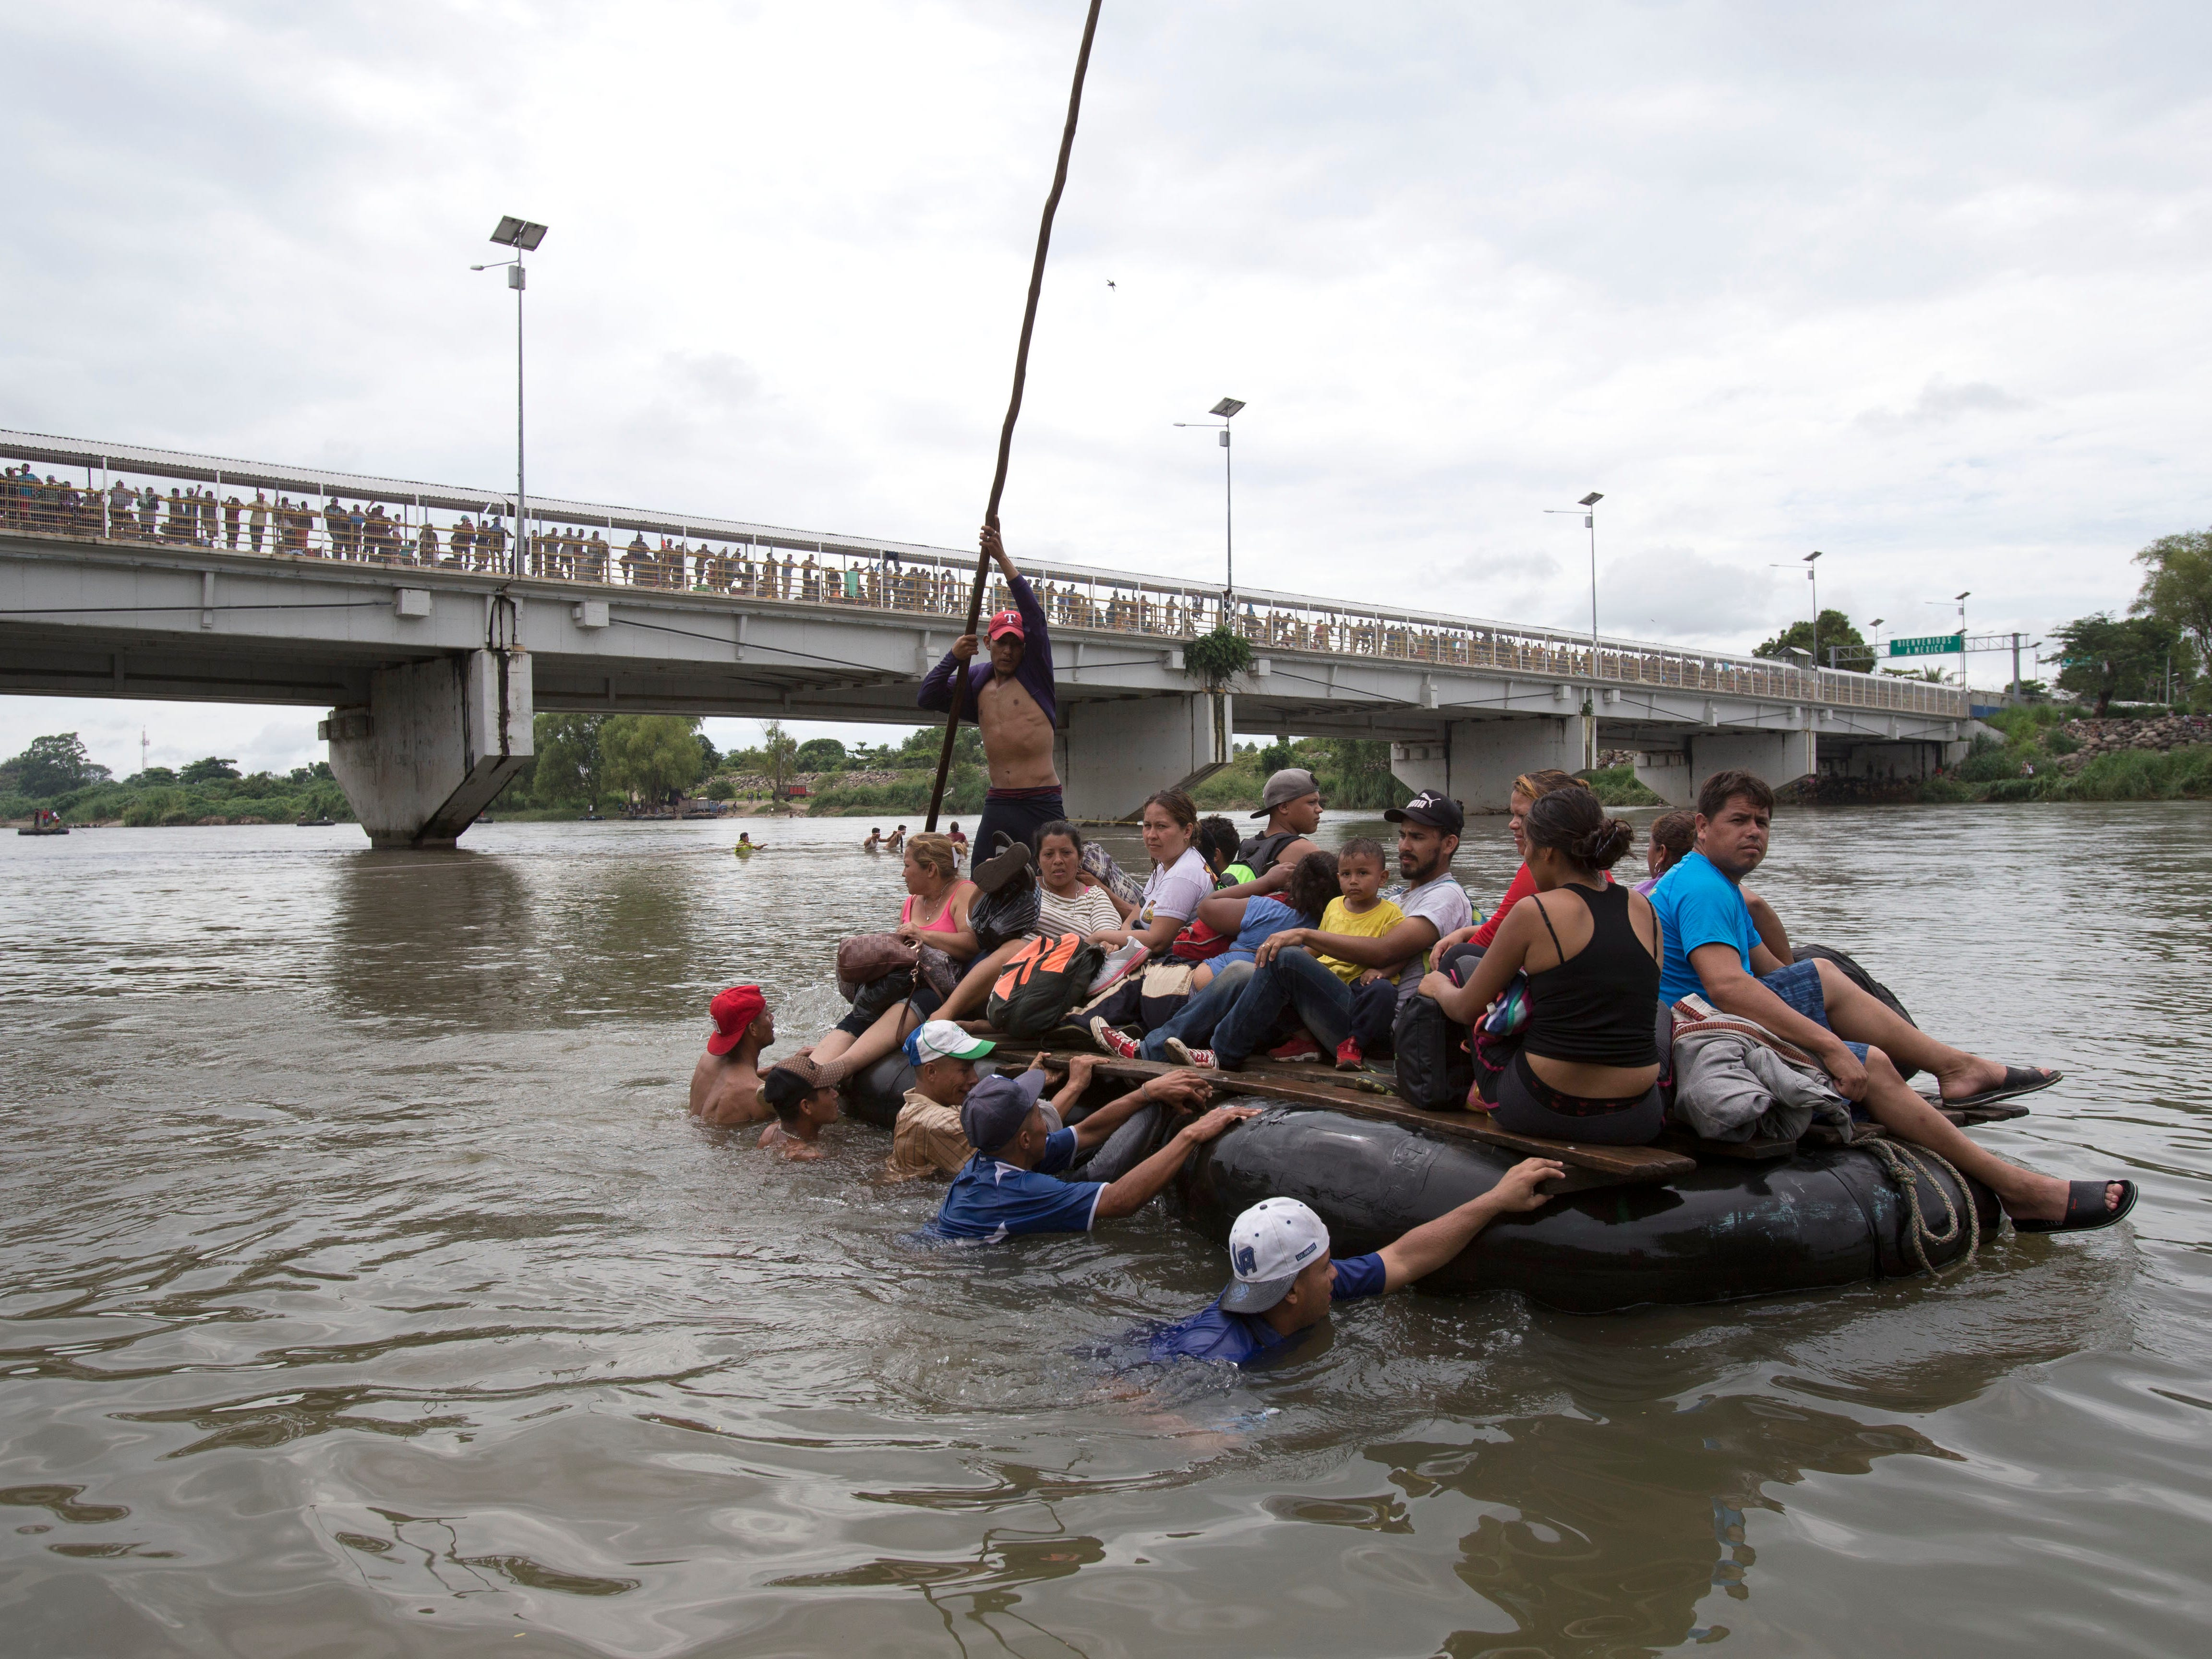 A group of Central American migrants cross the Suchiate River aboard a raft made out of tractor inner tubes and wooden planks, on the the border between Guatemala and Mexico, in Ciudad Hidalgo, Mexico, Saturday, Oct. 20, 2018. After Mexican authorities slowed access through the border bridge to a crawl, hundreds of migrants are boarding the rafts or wading across the river and crossing into Mexico illegally.